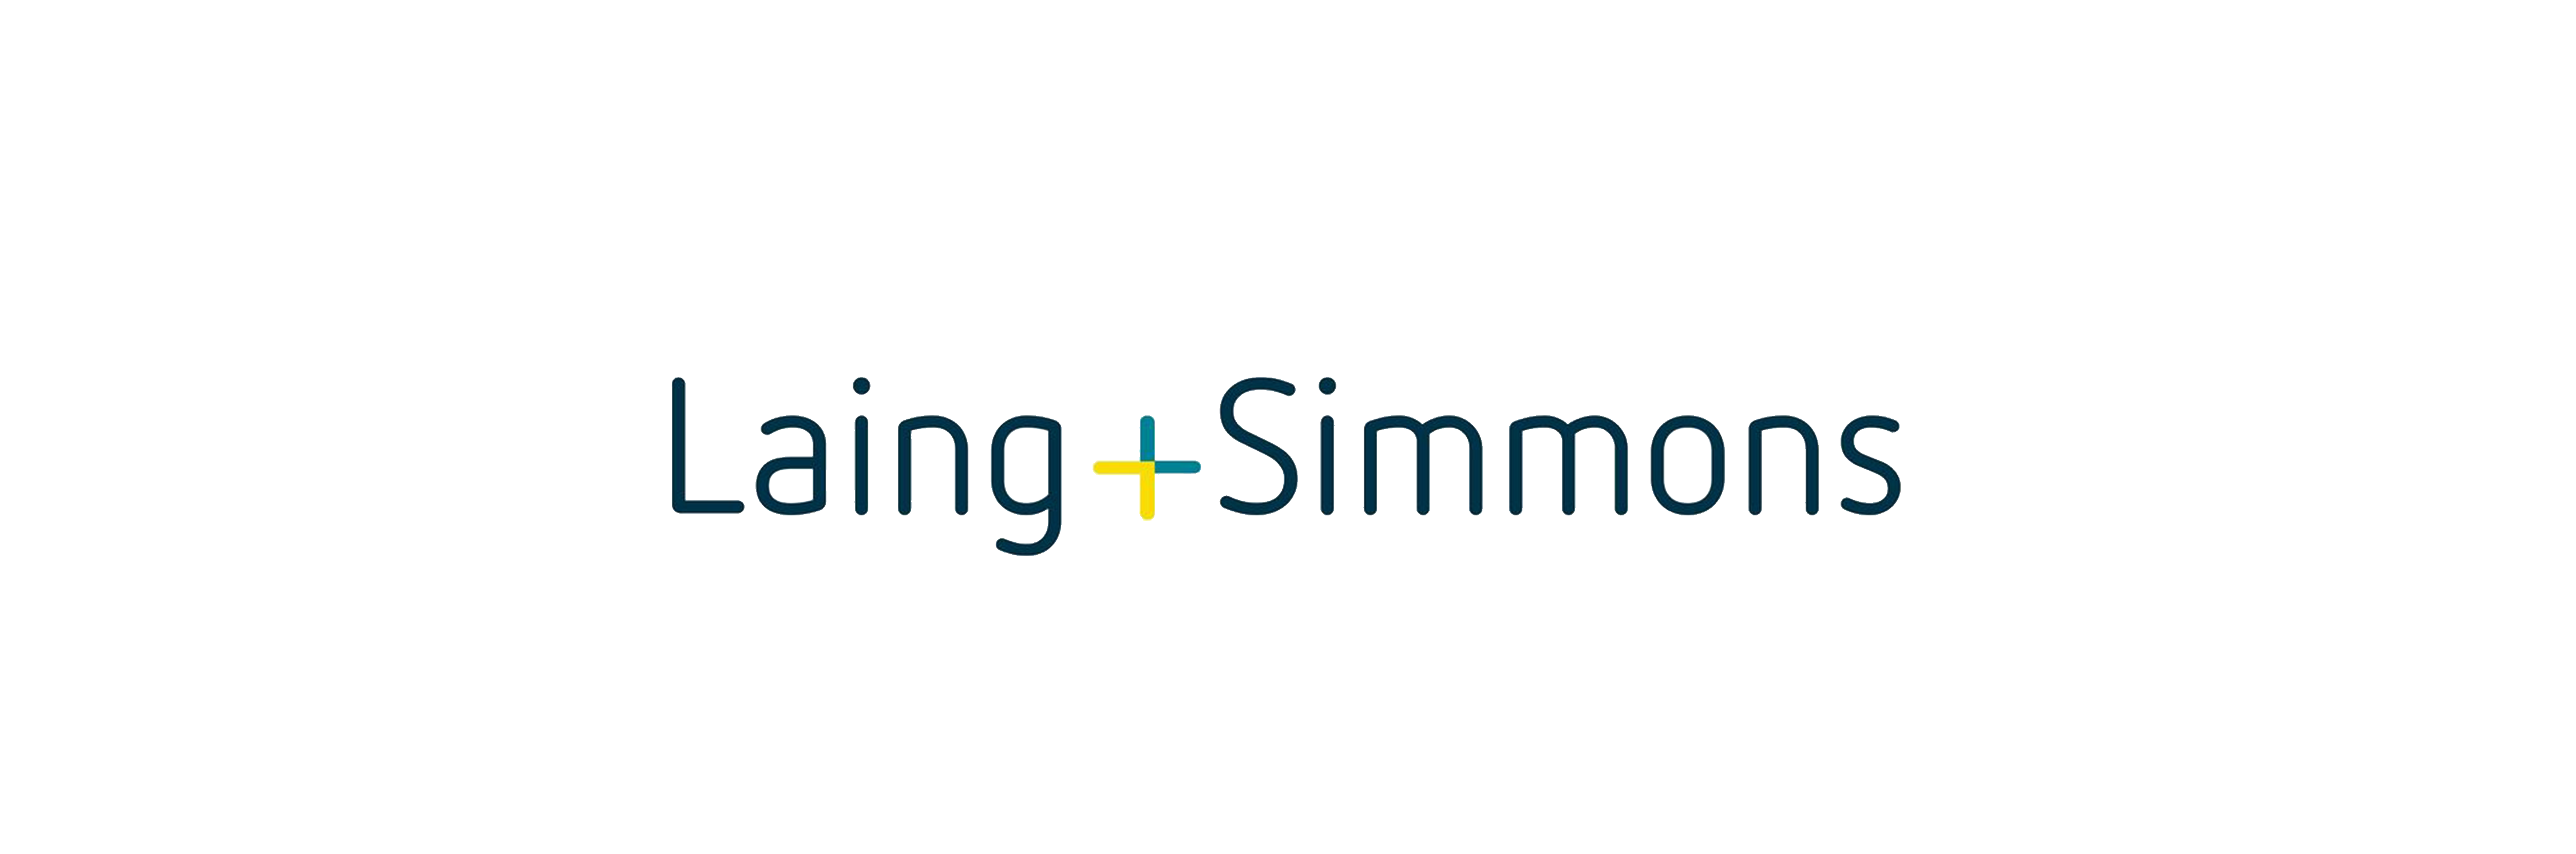 Laing & Simmons